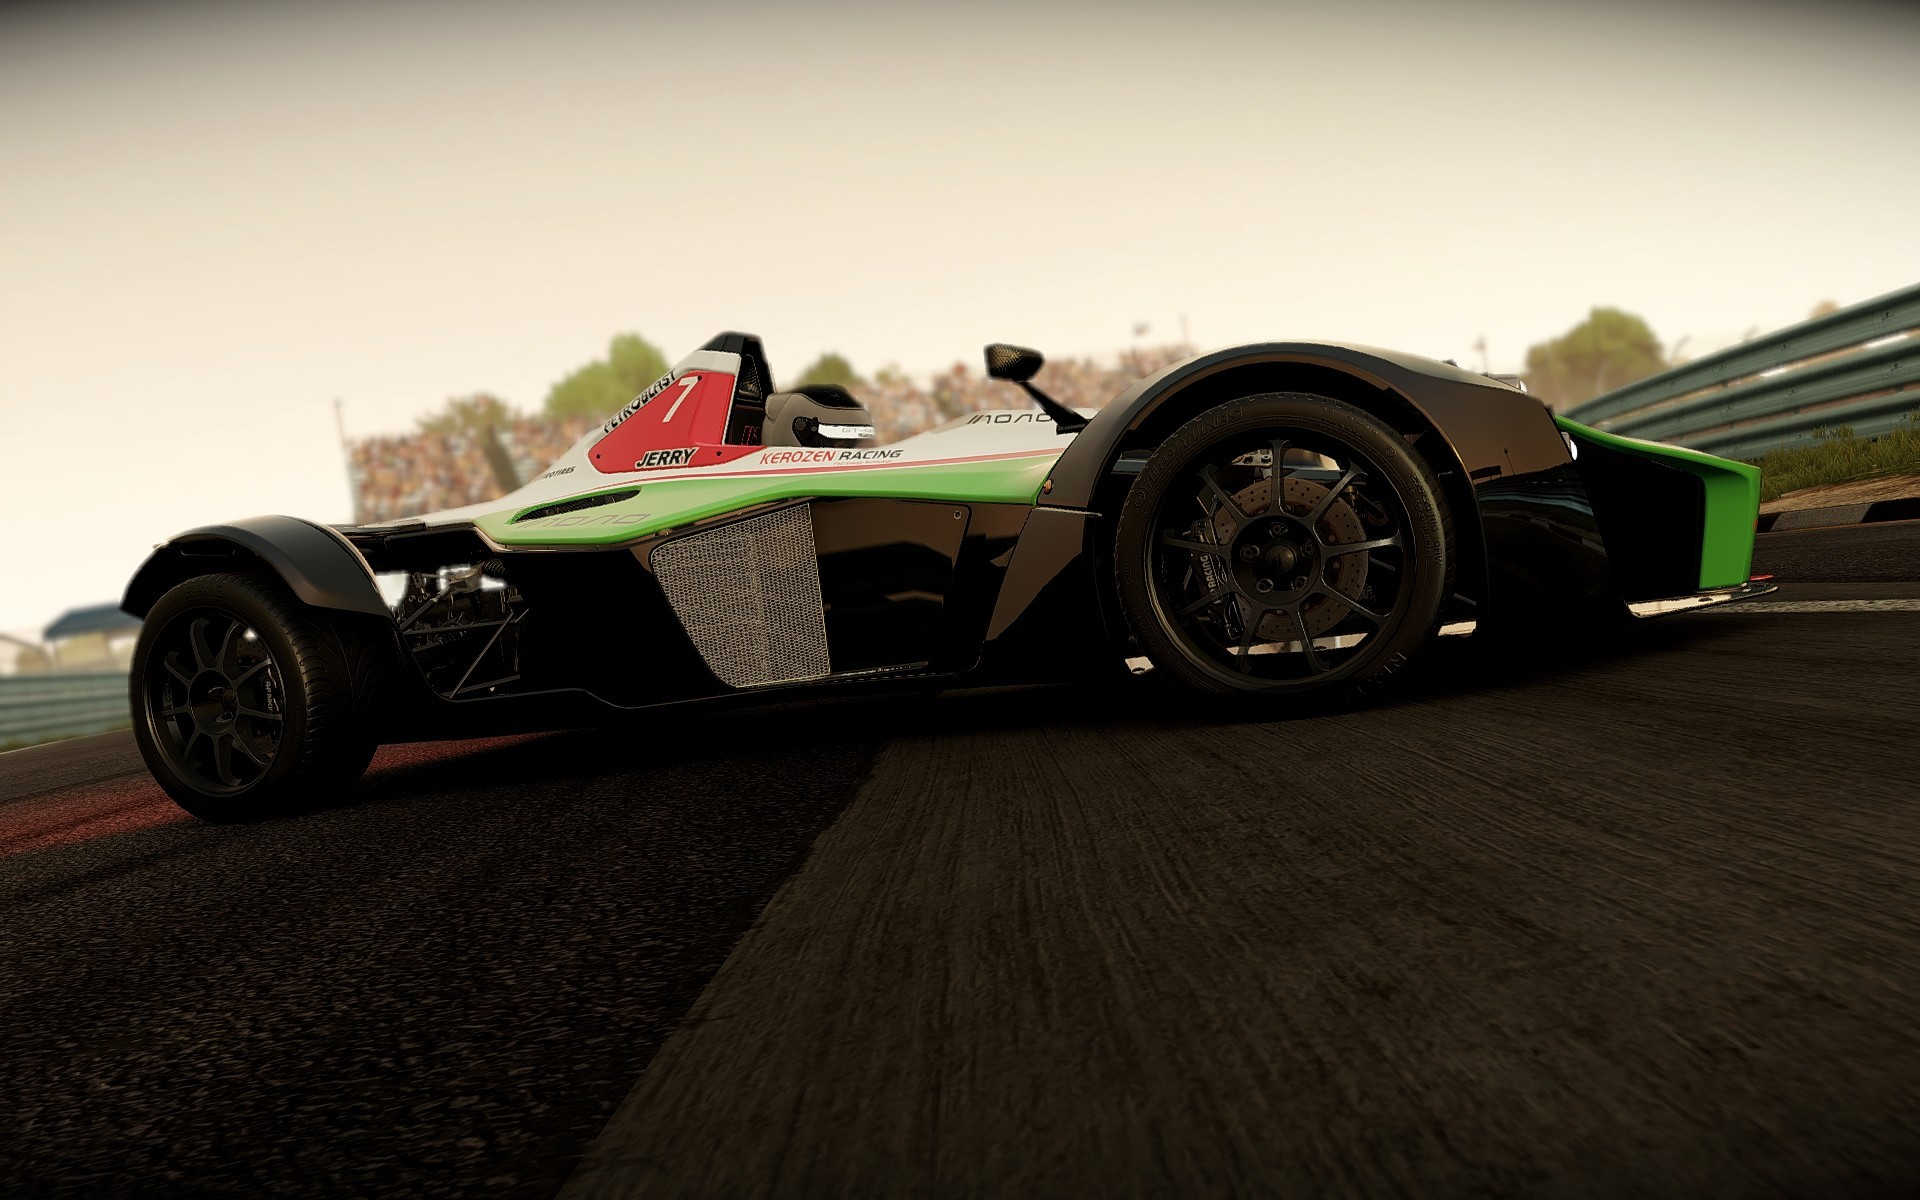 project cars lastest screens are visuals treat  leaves competitor far behind in competition